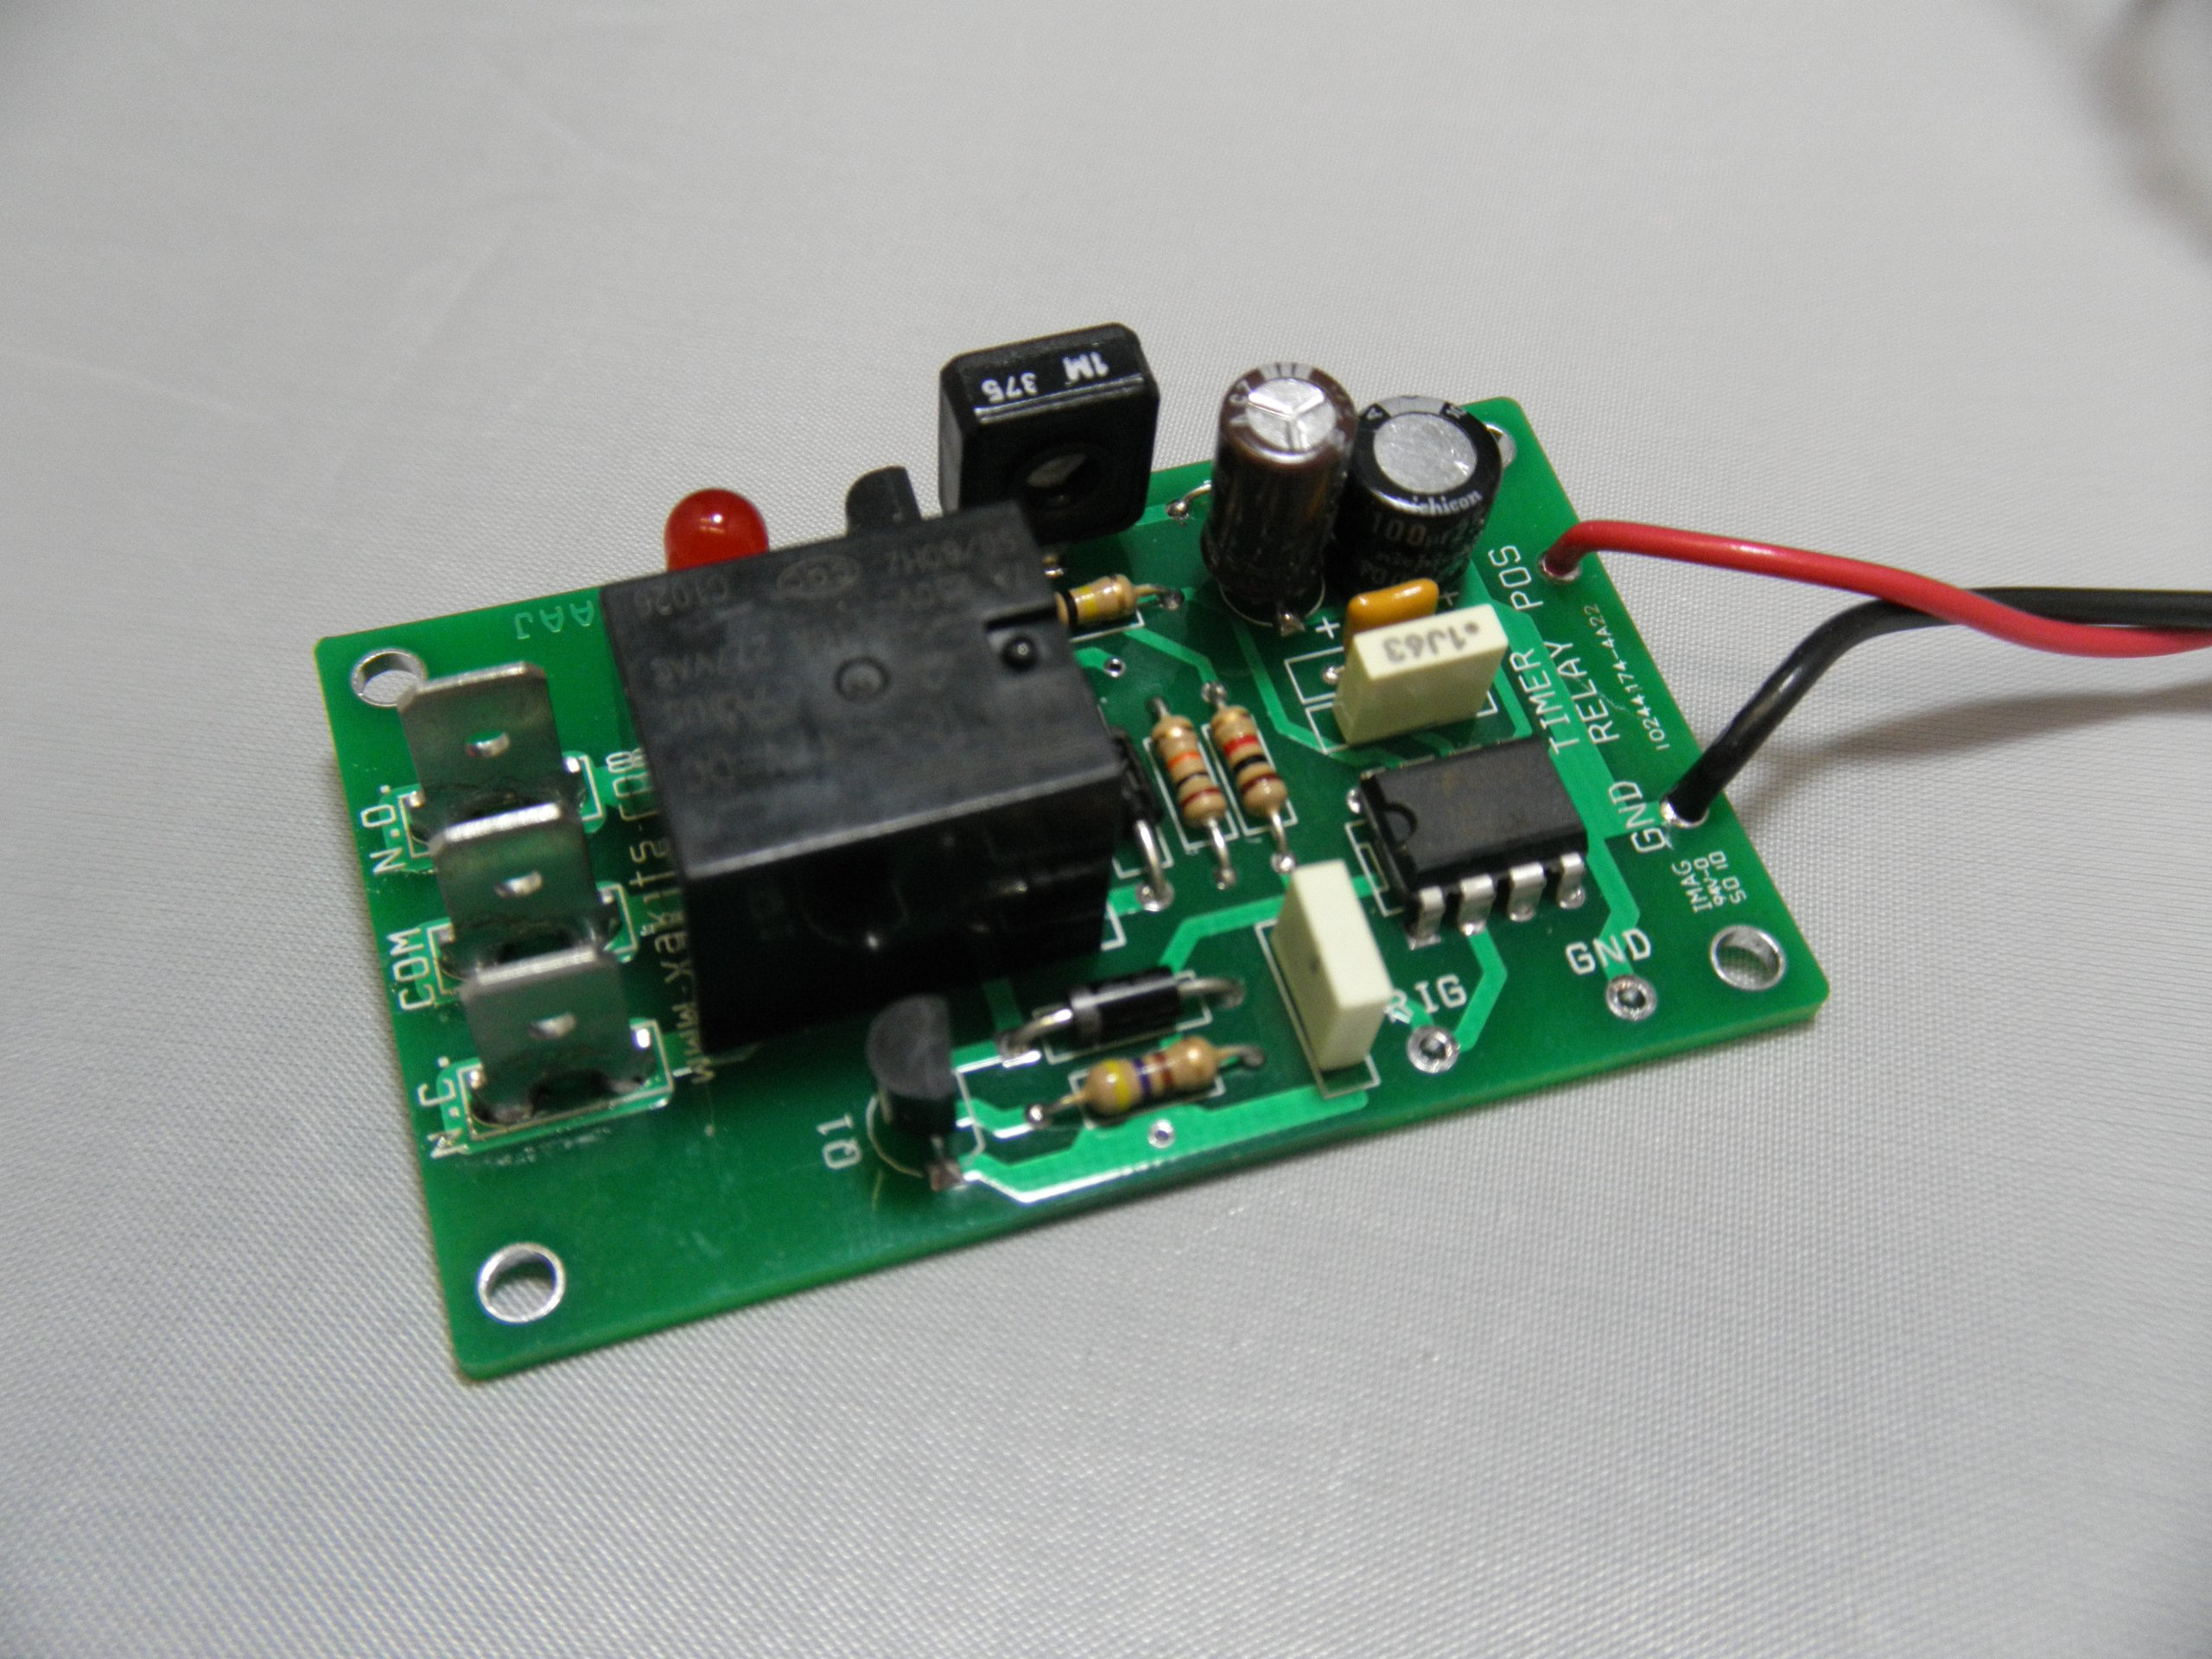 Cheap Timer Relay Kit, find Timer Relay Kit deals on line at ... on apexi turbo timer wiring, timer washing machine wiring, pool pump timer wiring, timer wiring diagram, timer switch wiring, omron timer wiring, timer contactor wiring, timer switch schematic,